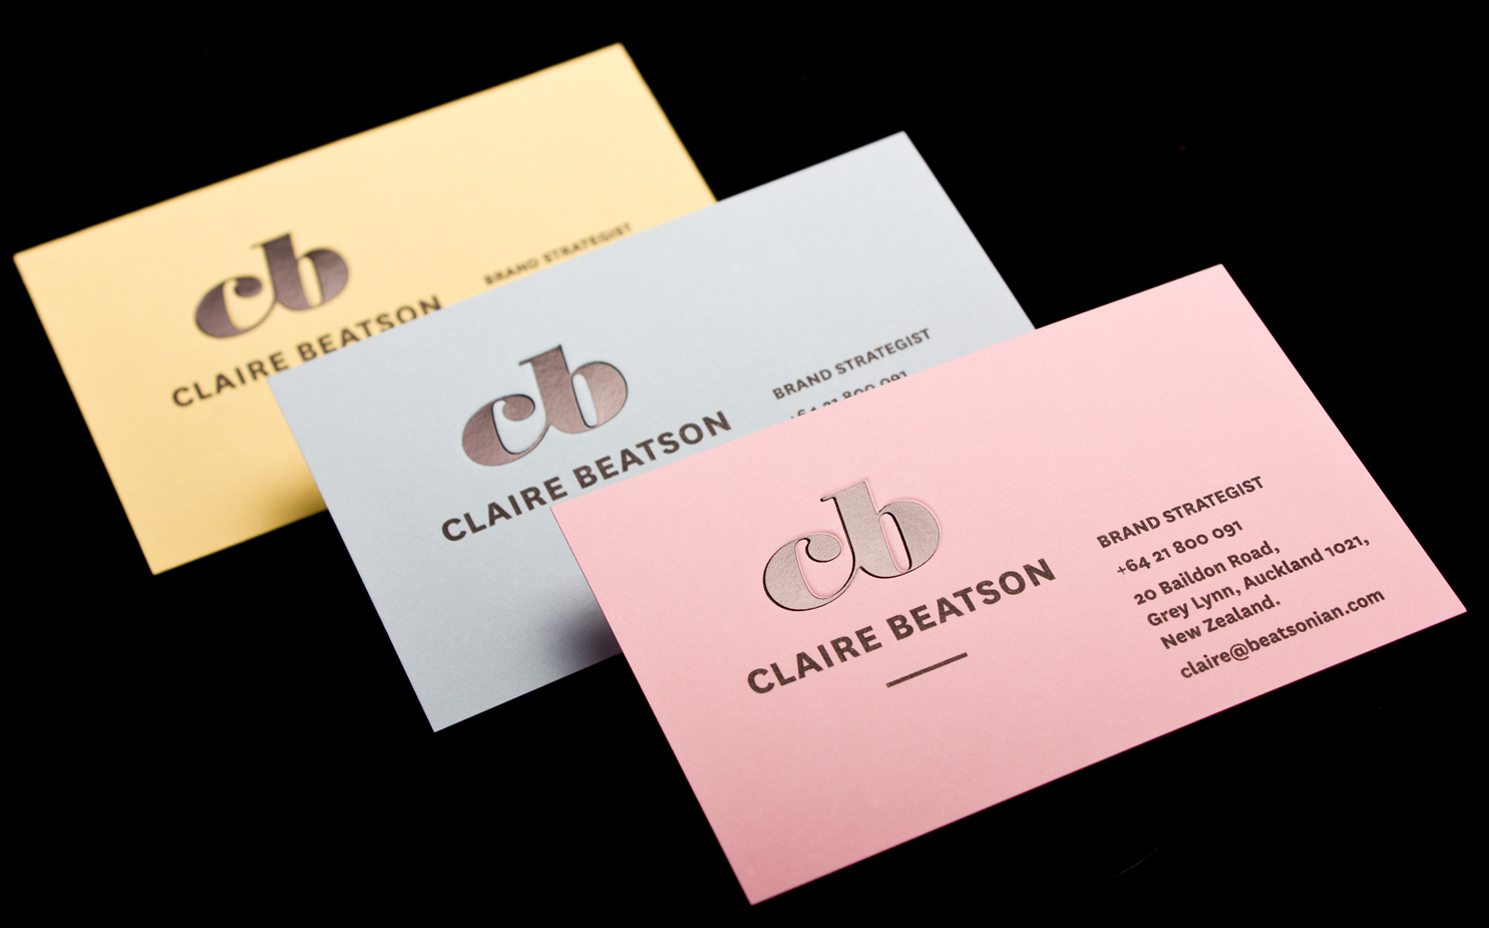 Claire beatson business cards logick print reheart Choice Image